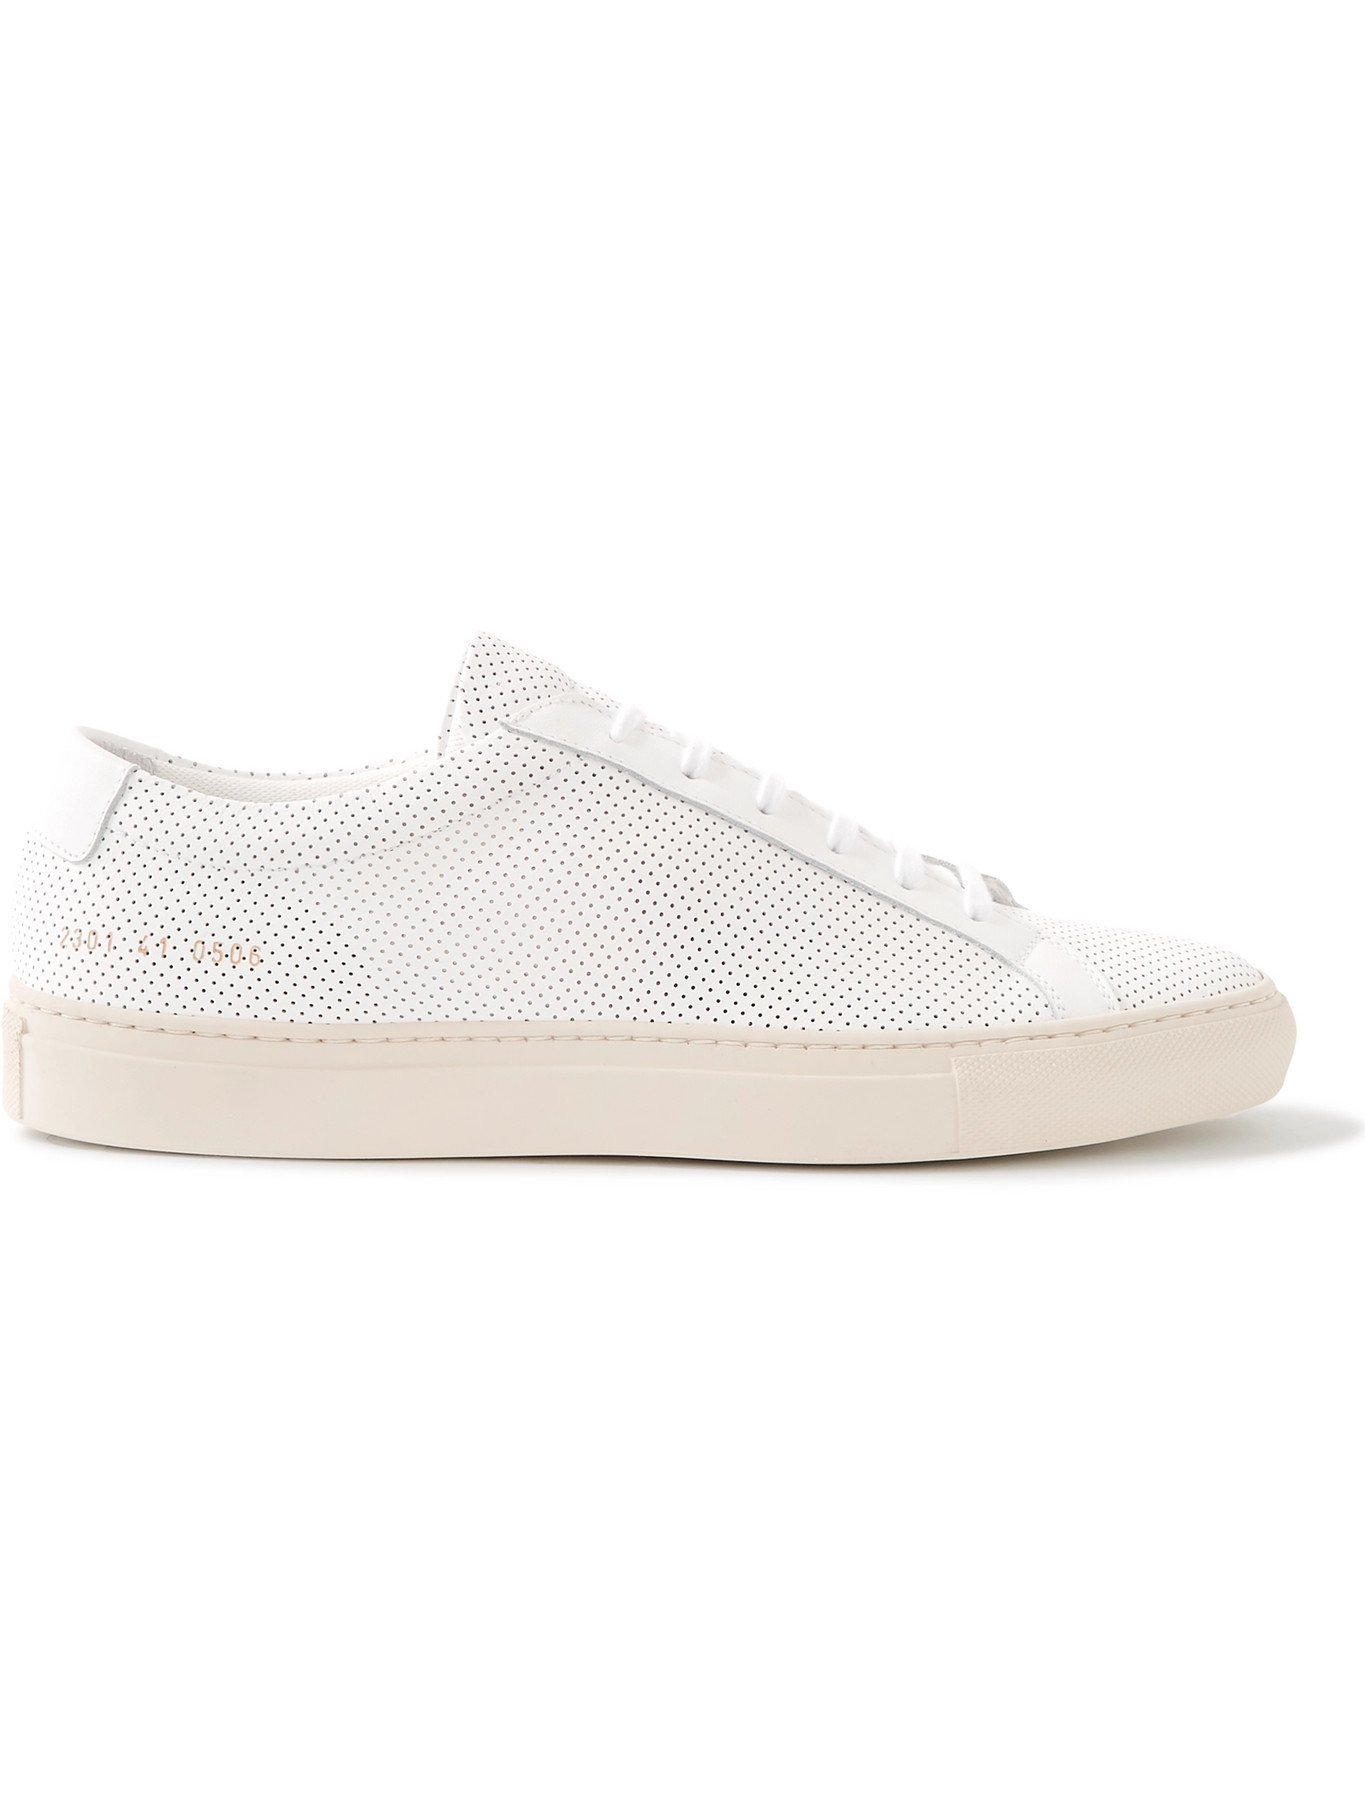 COMMON PROJECTS - Achilles Perforated Leather Sneakers - White